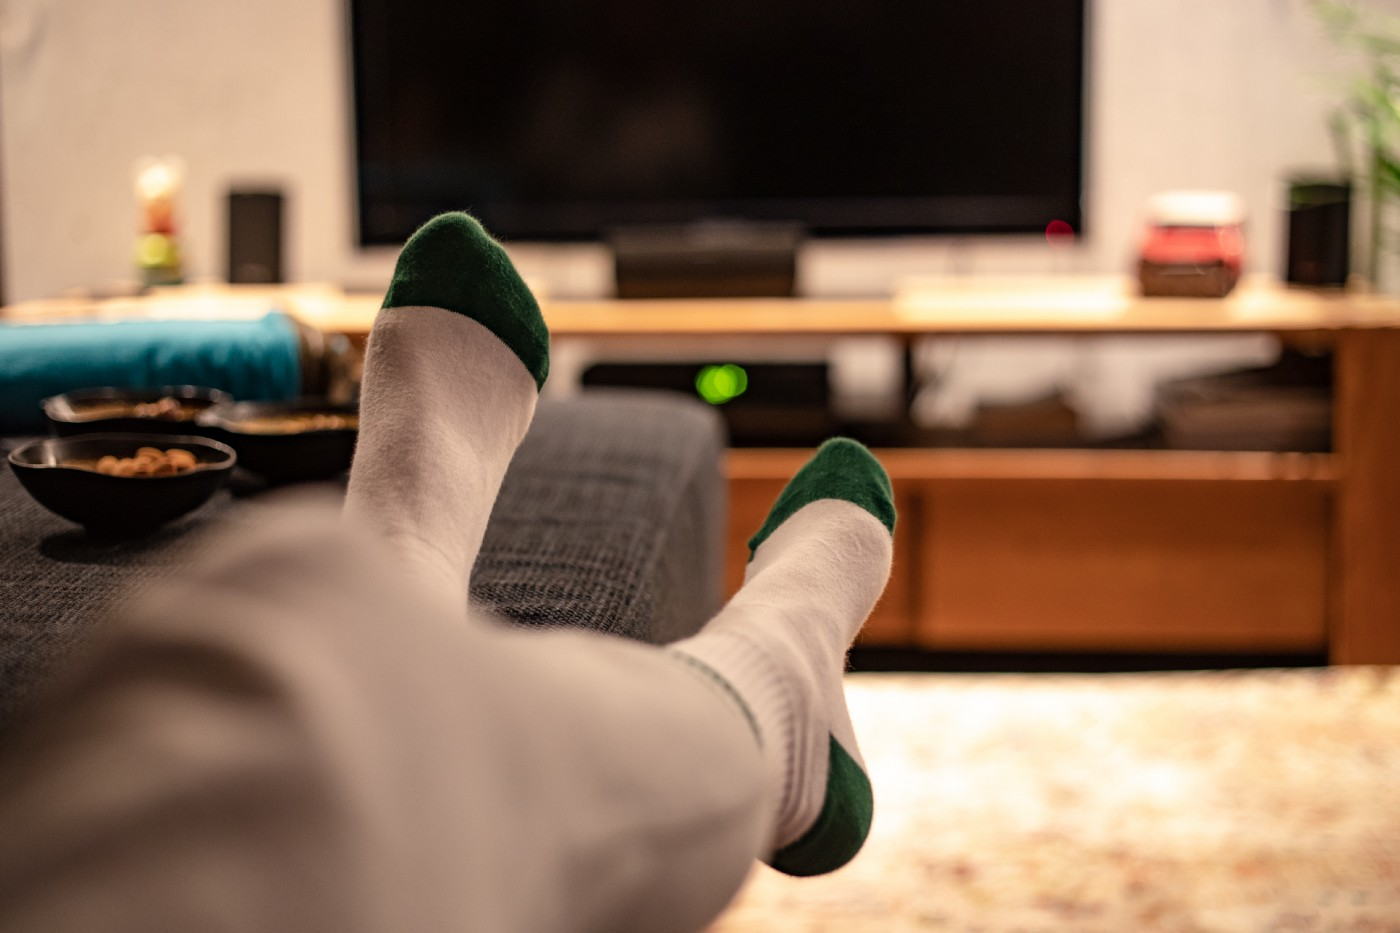 View of person's crossed legs/feet on the sofa with TV in background.